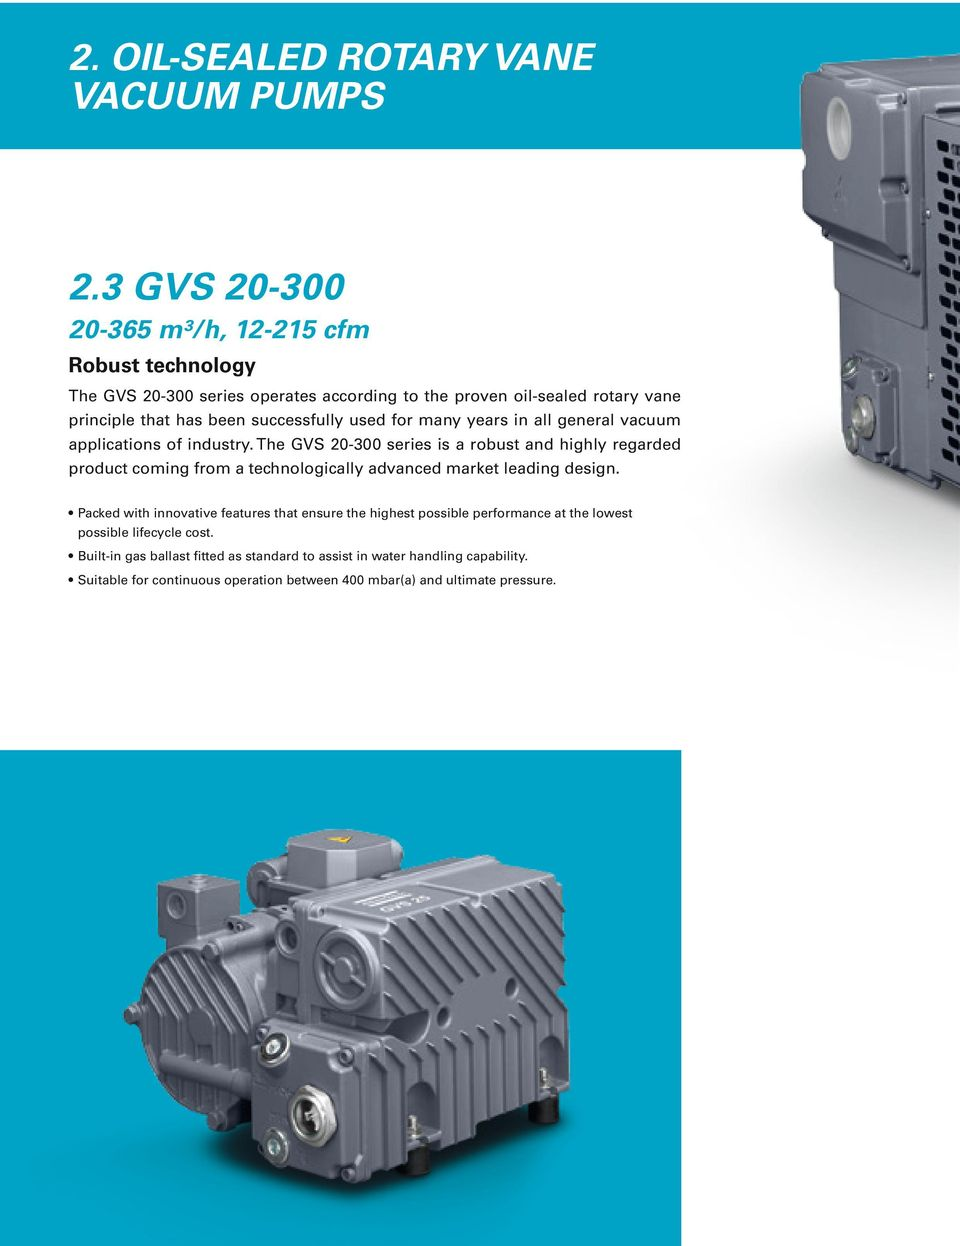 used for many years in all general vacuum applications of industry.